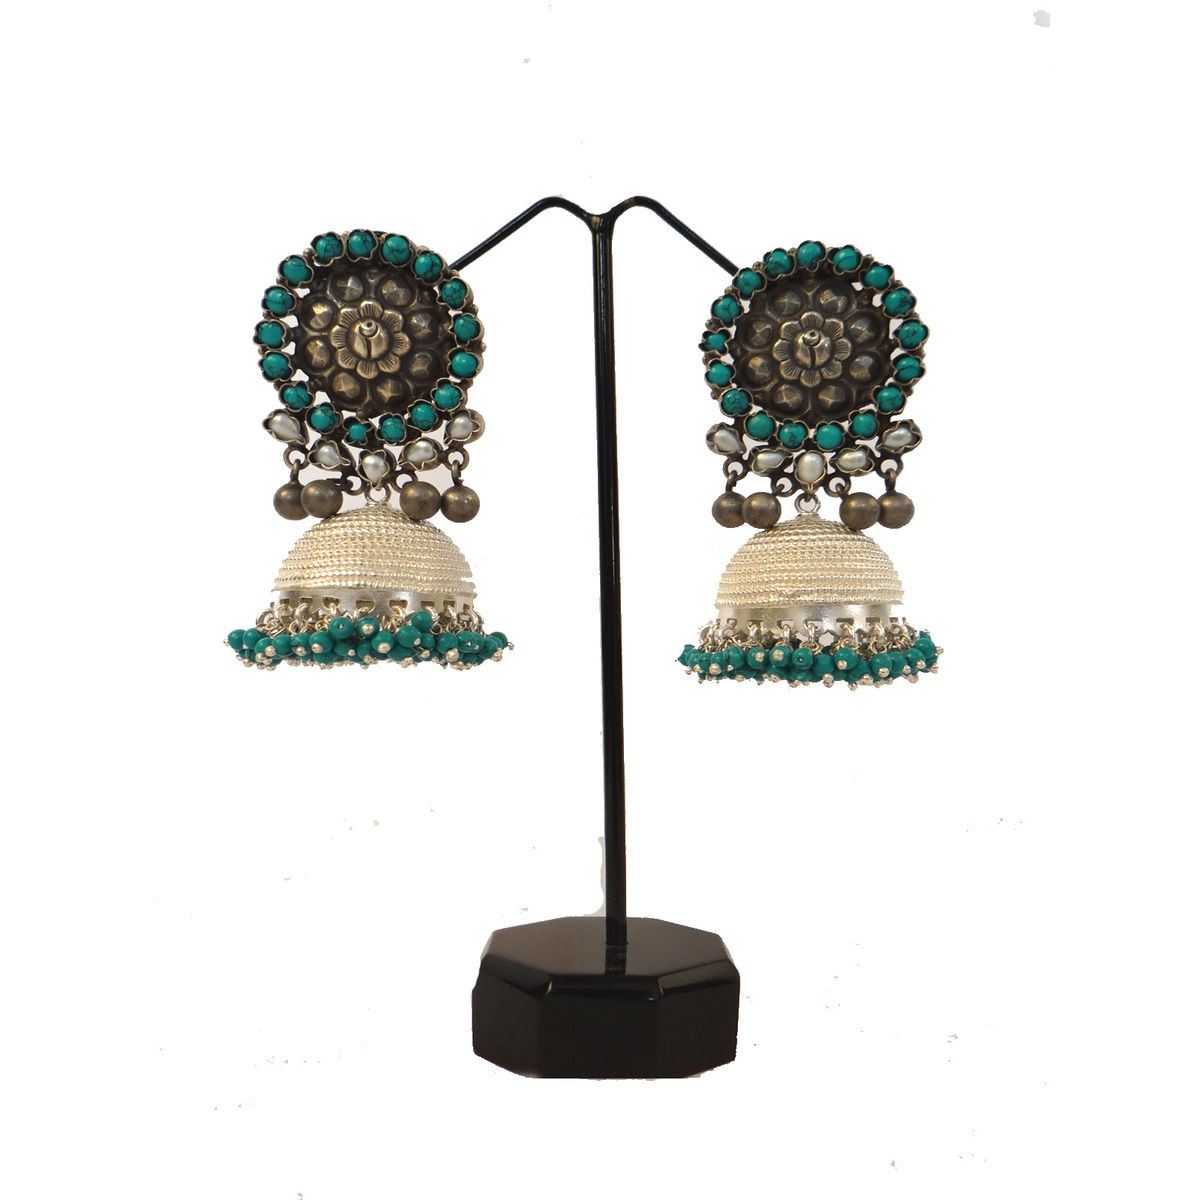 b4f9aa1d1 Buy Indian August pure silver jhumka earrings Online - eIndianAugust.com